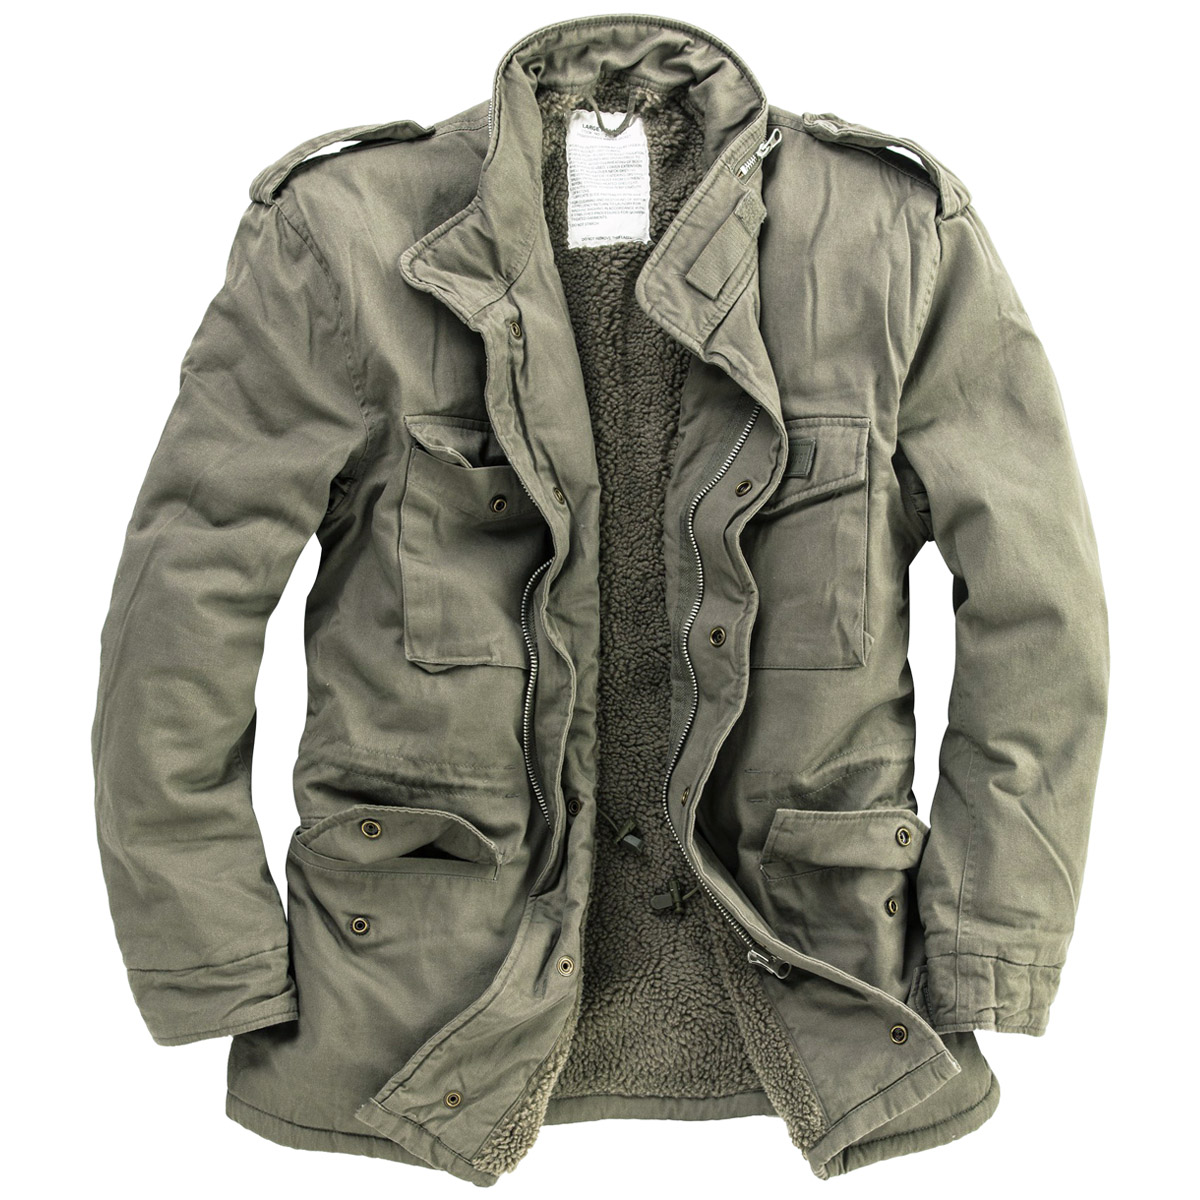 Surplus Camouflage Clothing & Accessories US | Military 1st